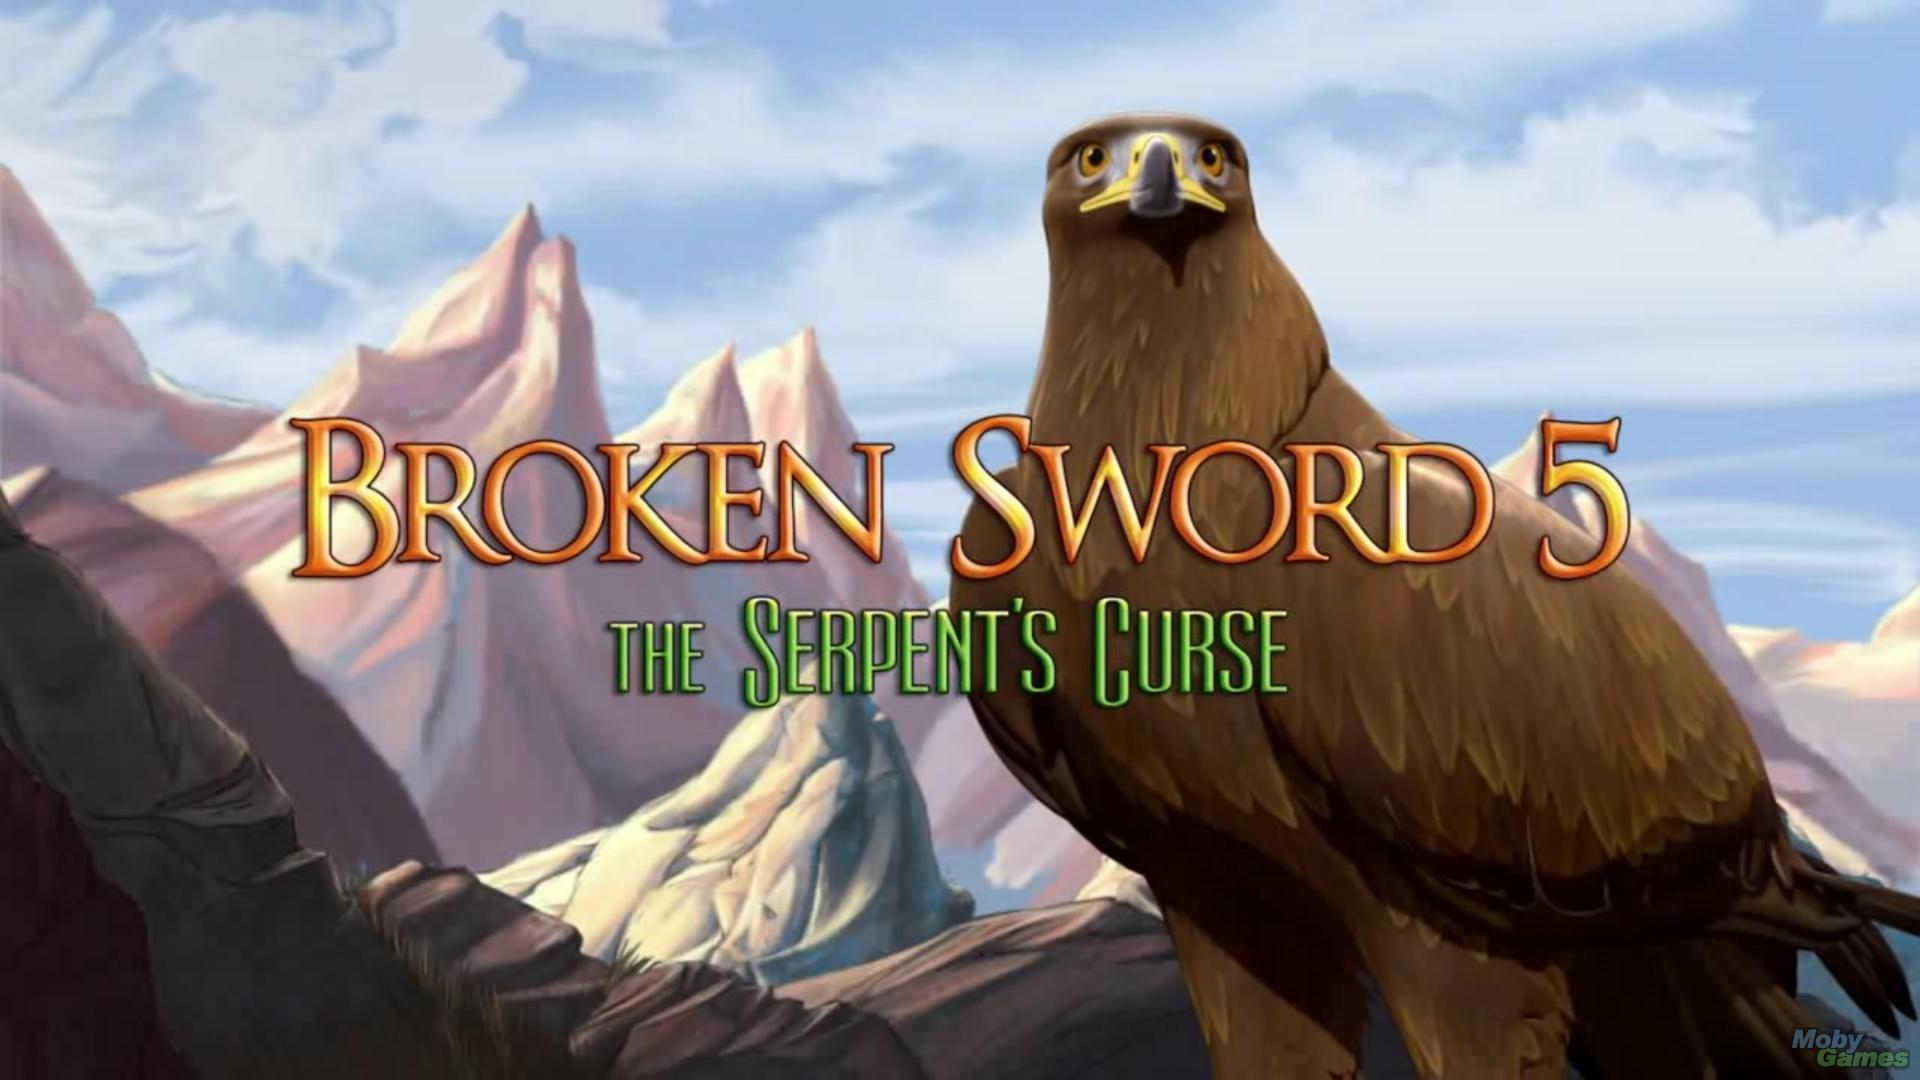 647255-broken-sword-5-the-serpent-s-curse-windows-screenshot-title